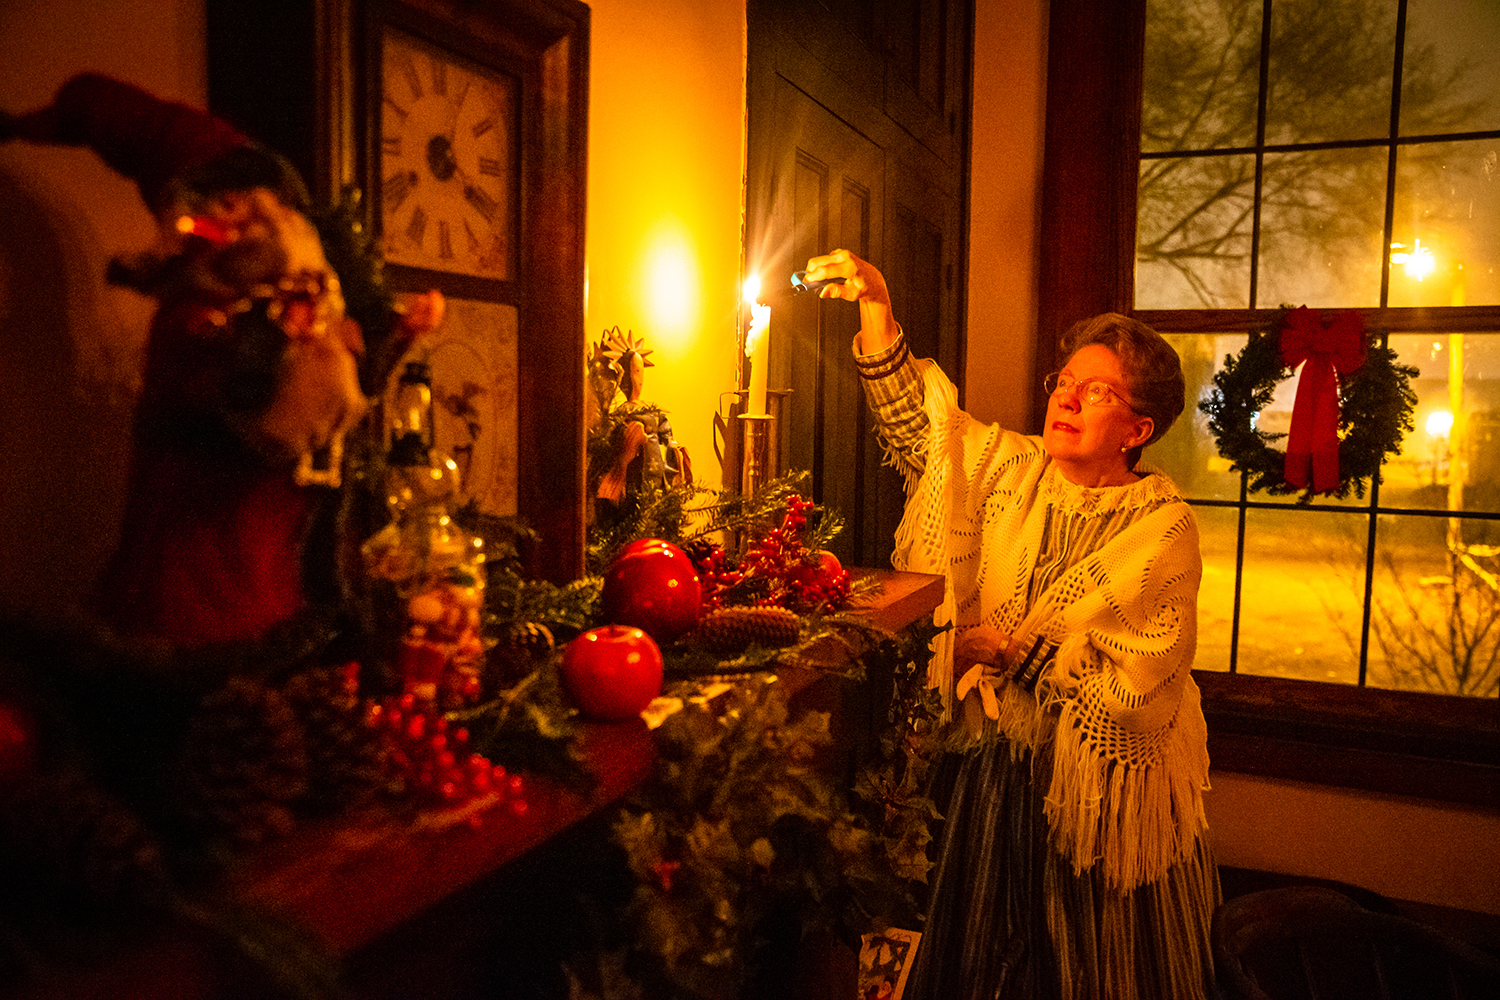 Betty Ann Poage, a volunteer with the Elijah Iles House, lights candles dressed in period clothing from the 1850s for her presenter role in one of the four rooms, each with Christmas decorations representing a time period of the 19th century, in preparation for the Iles House Candlelight Tour at the Elijah Iles House, Friday, Dec. 14, 2018, in Springfield, Ill. The house's decorated interior demonstrated how Christmas was celebrated in the 19th century and how it evolved from a relatively minor holiday into a major American celebration. The Christmas theme continues on Saturday with the Historic Christmas Open House at the Elijah Iles House featuring the decorations from 1 p.m. to 4 p.m. with children's activities, caroling and live music. [Justin L. Fowler/The State Journal-Register]